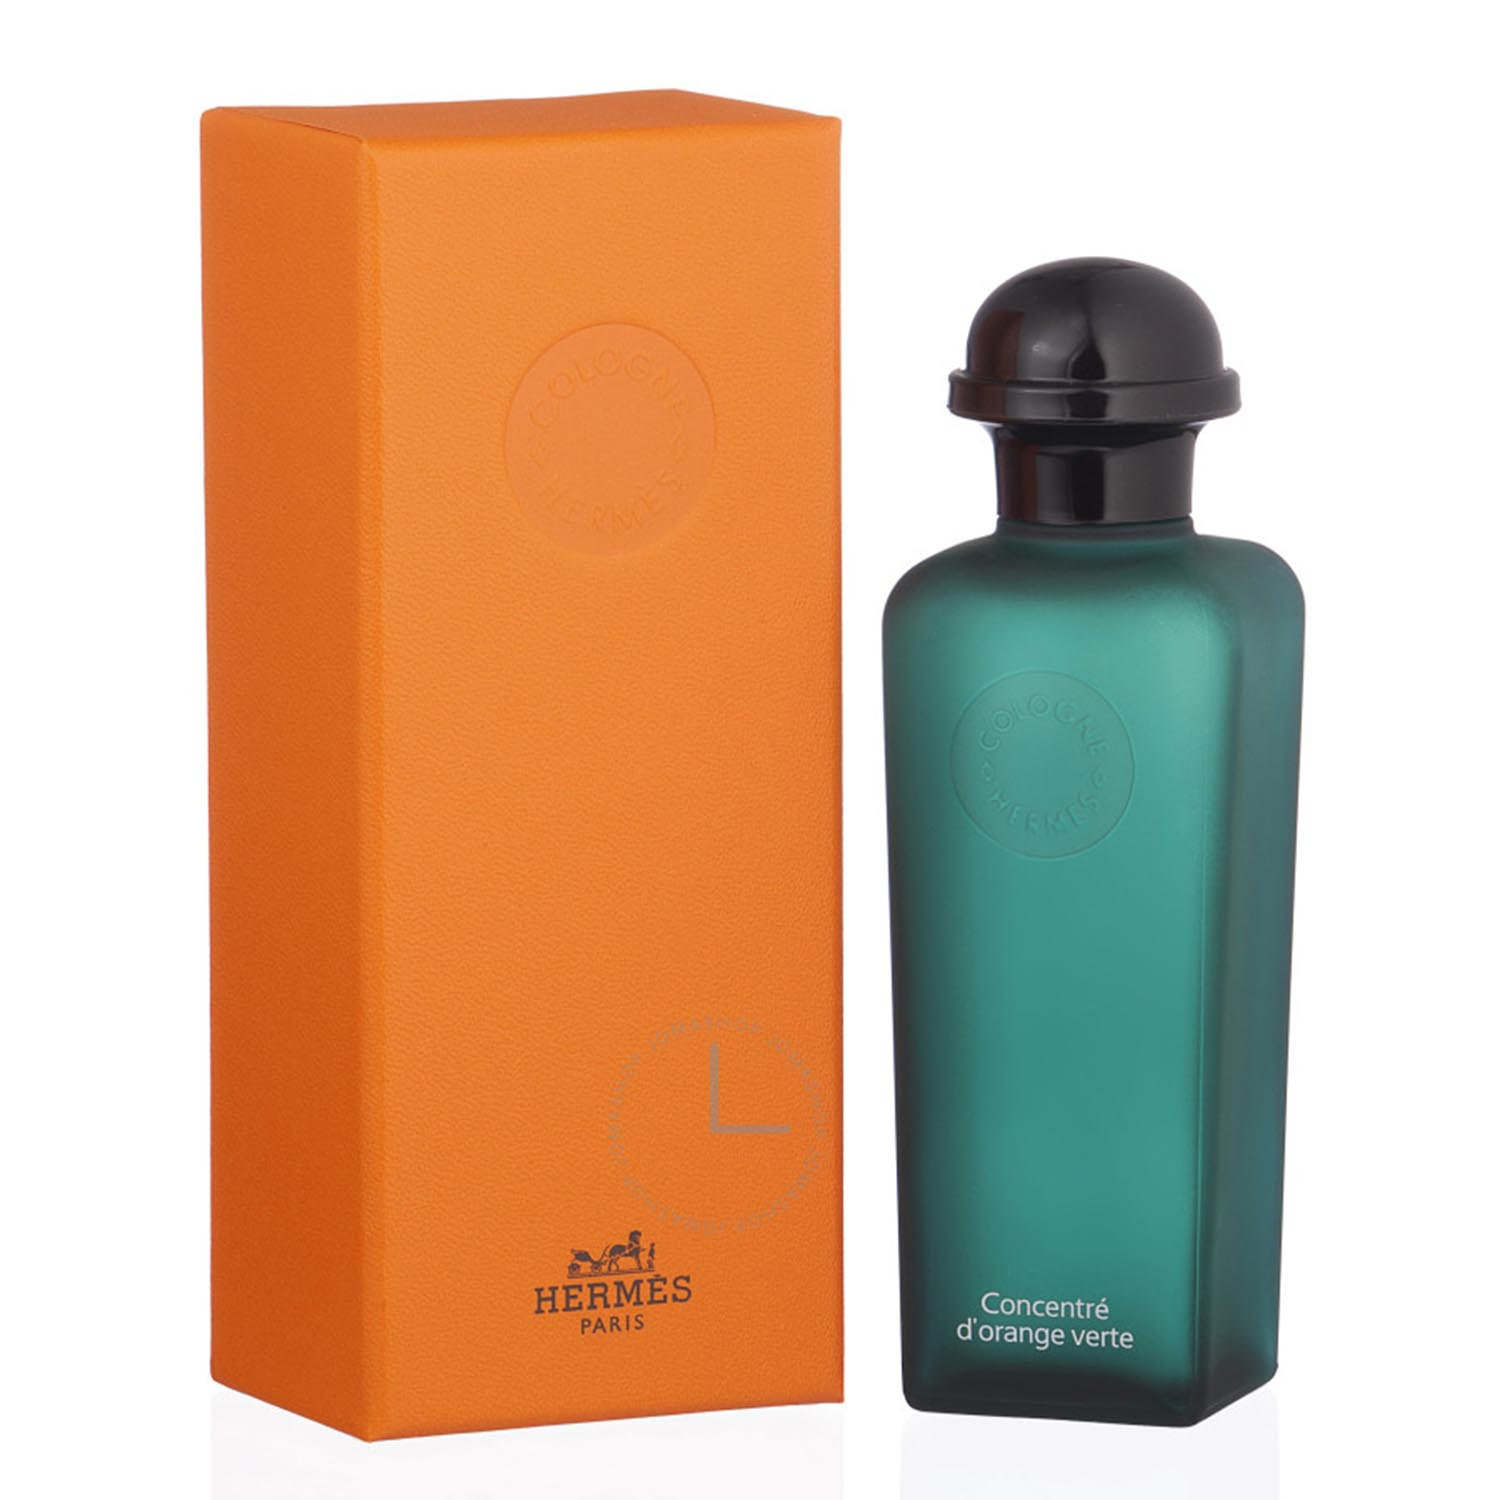 Hermes paris eau d orange verte eau de cologne 50ml refillable vaporizador